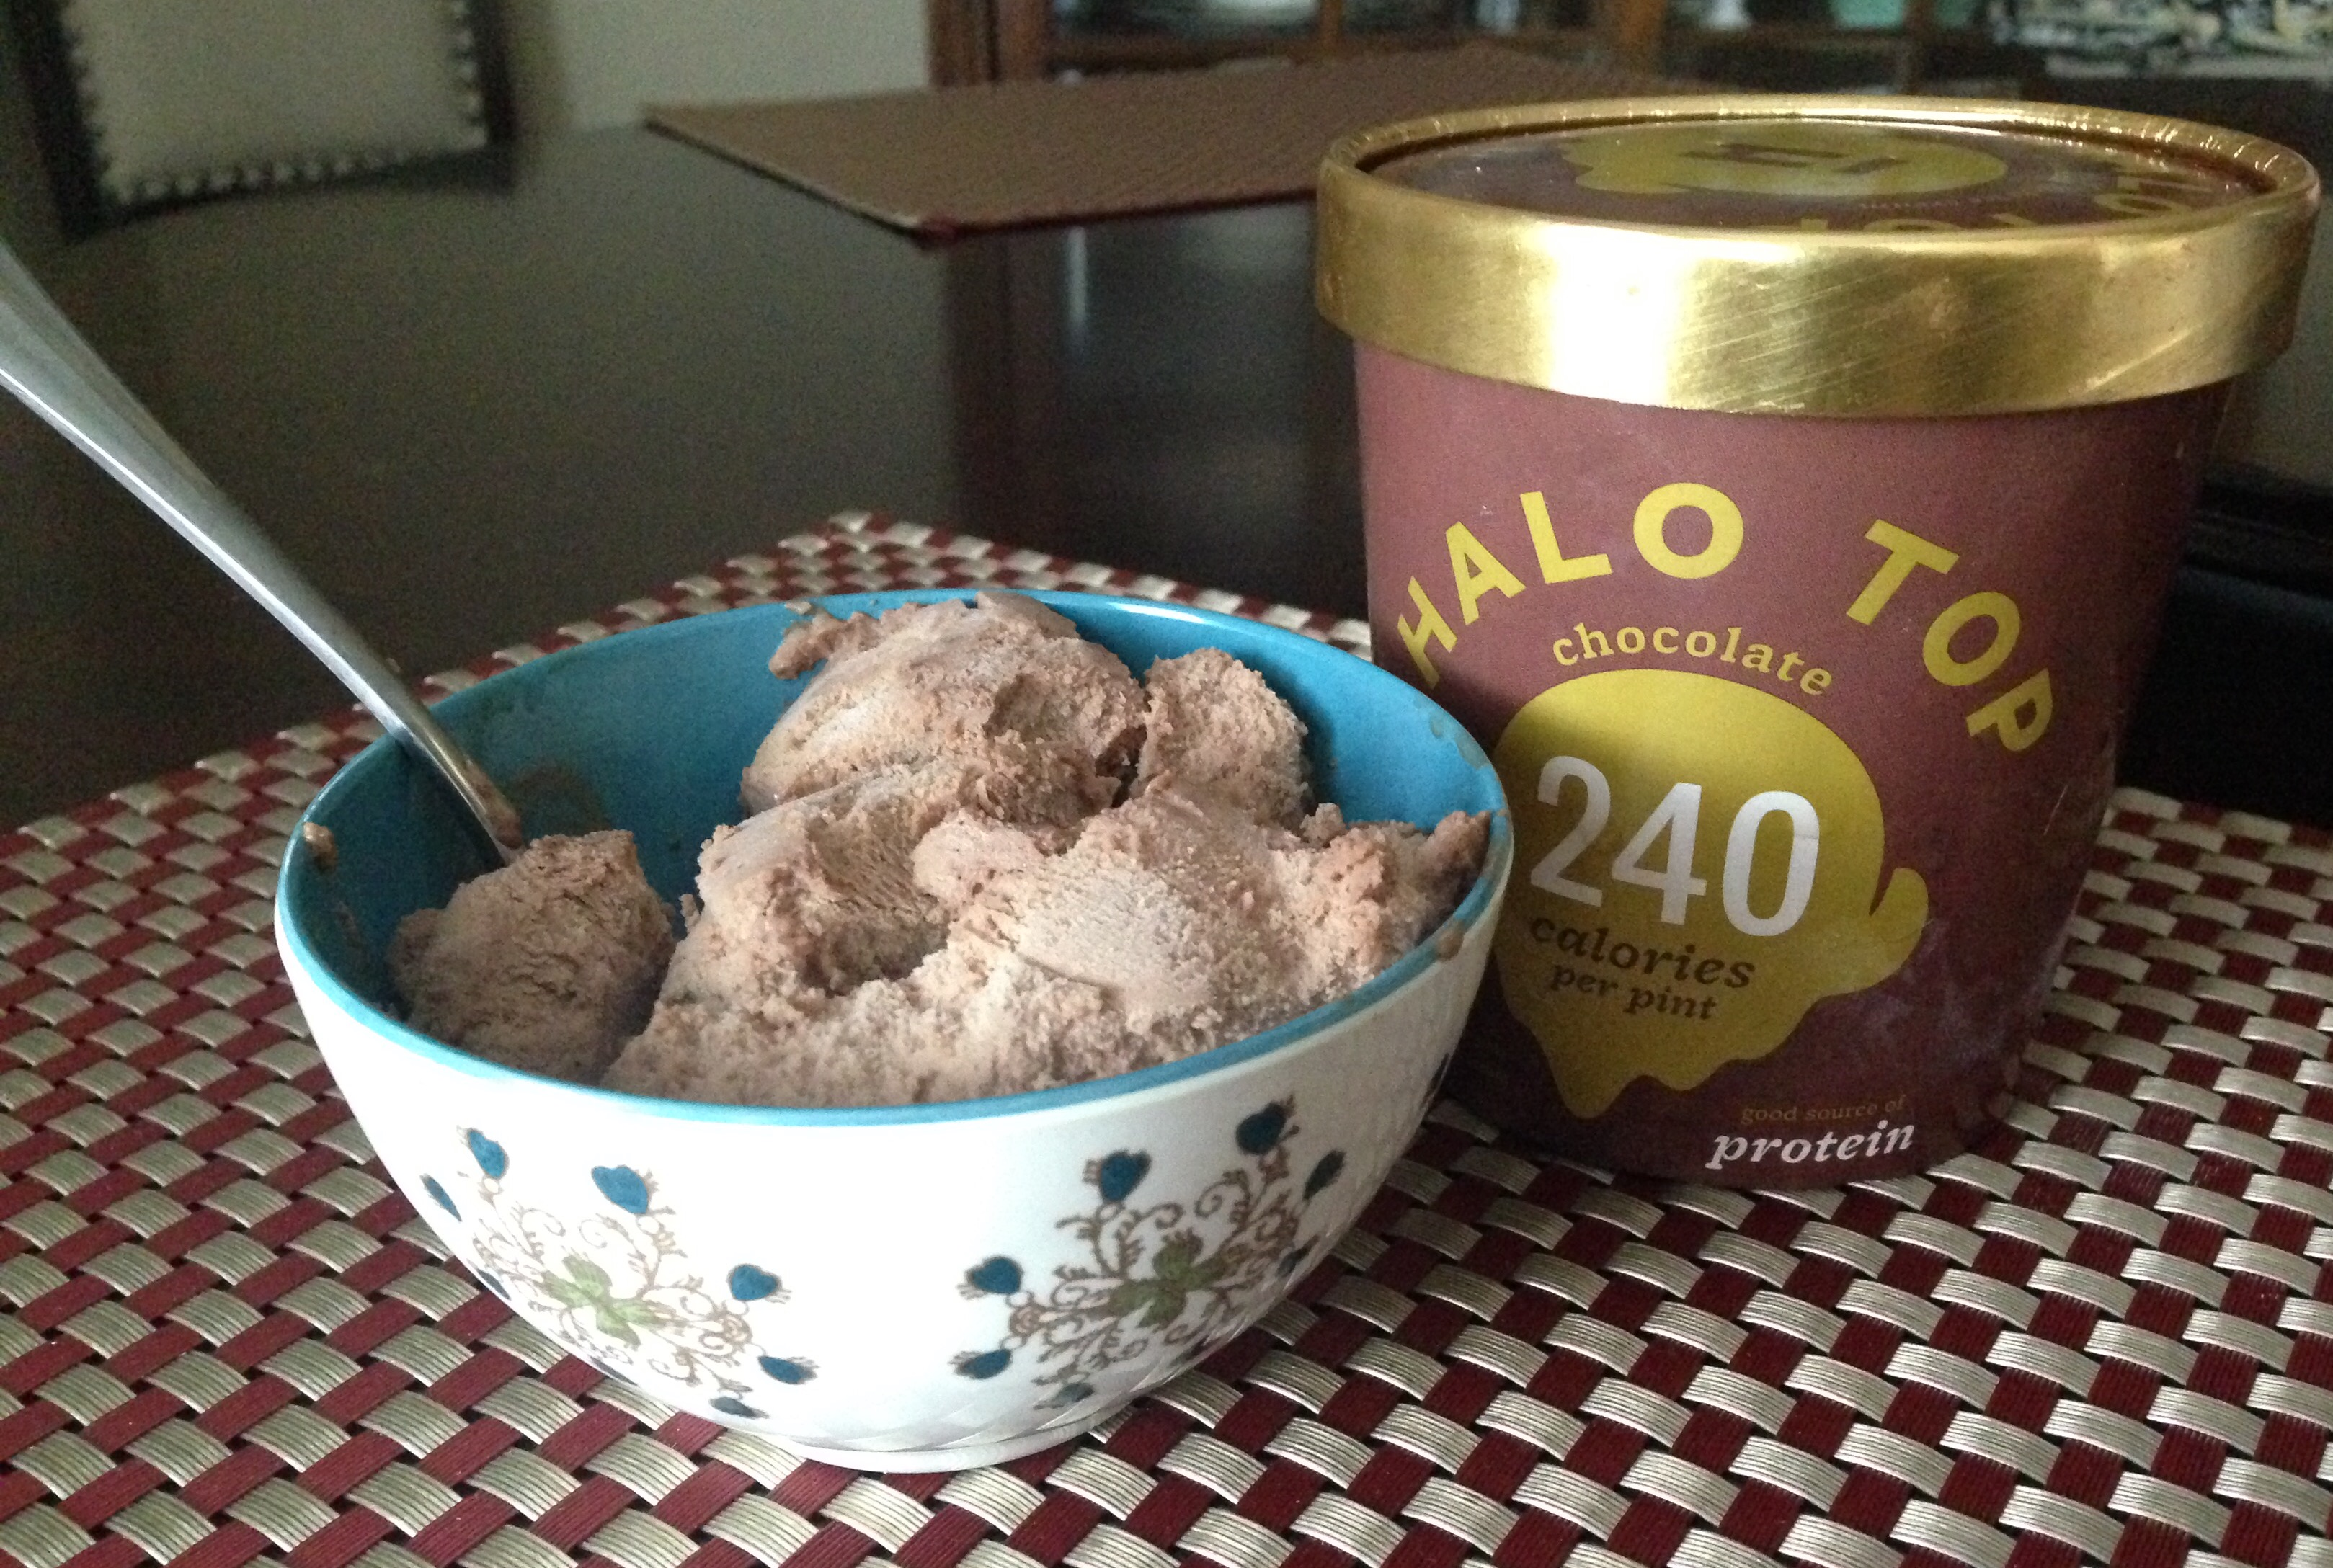 An Entire Pint of Halo Top Ice Cream Has Less Than 250 Calories